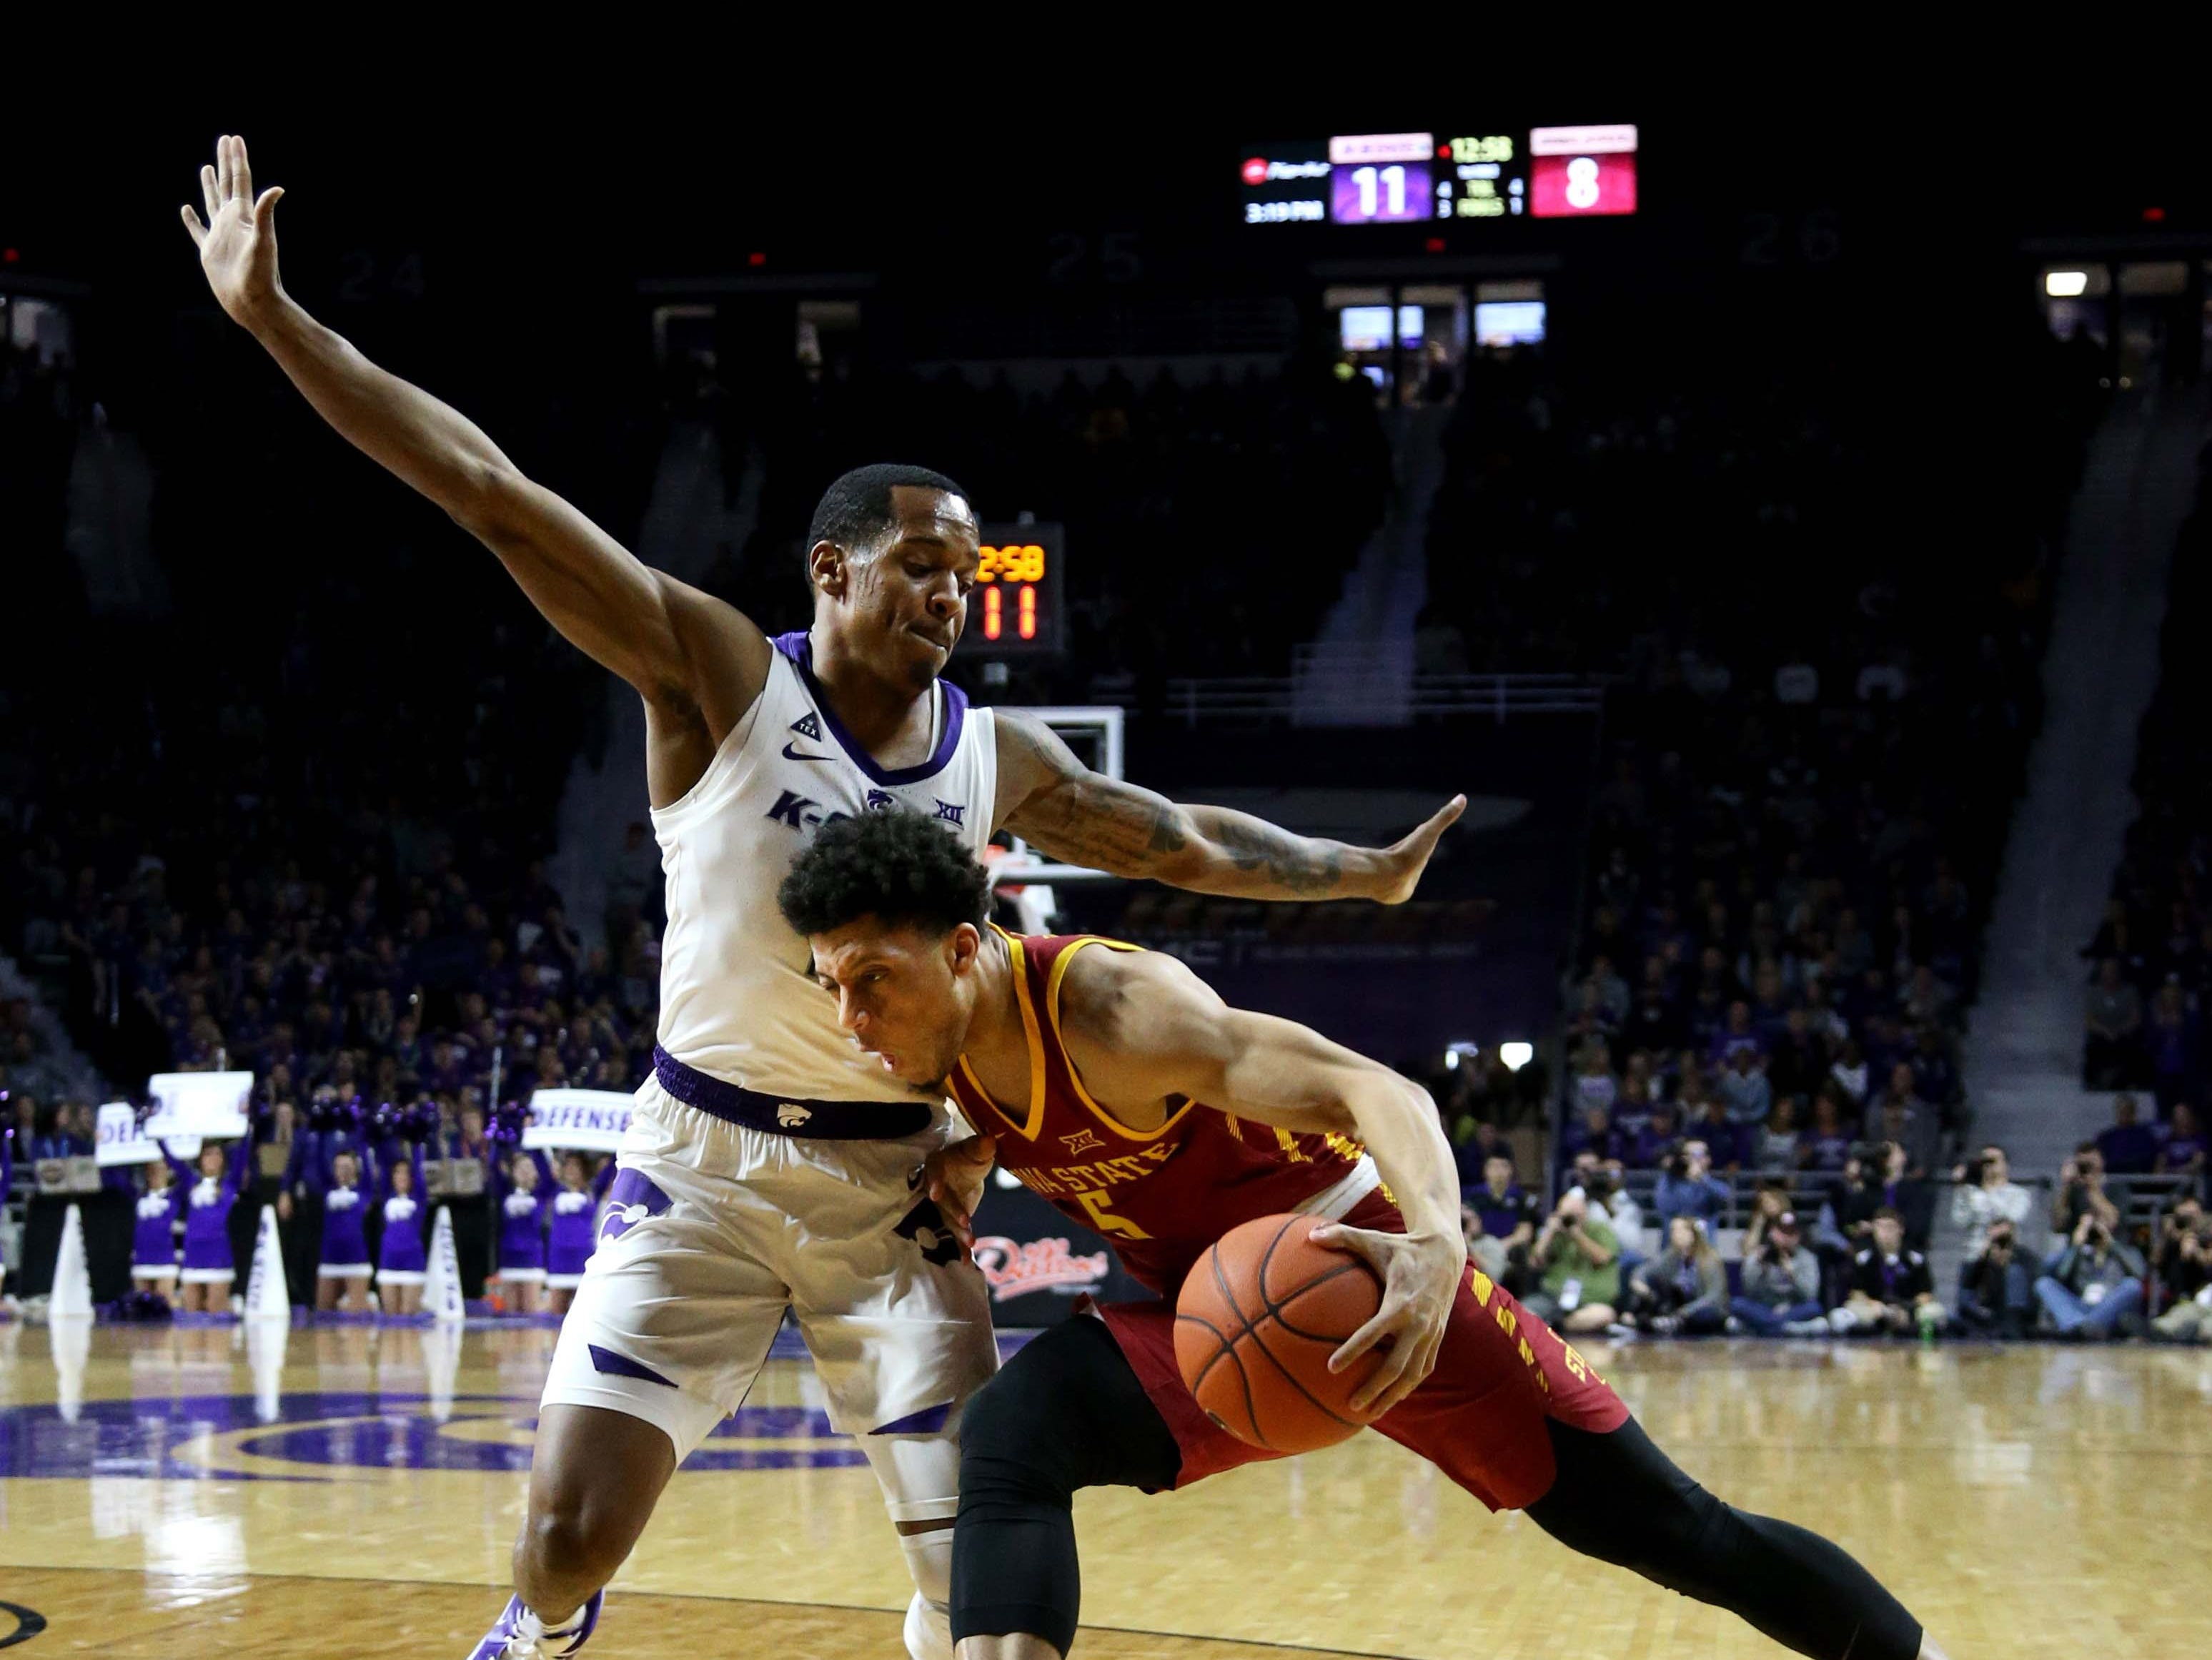 Feb 16, 2019; Manhattan, KS, USA; Iowa State Cyclones guard Lindell Wigginton (5) is guarded by Kansas State Wildcats guard Barry Brown (5) during the first half at Bramlage Coliseum.